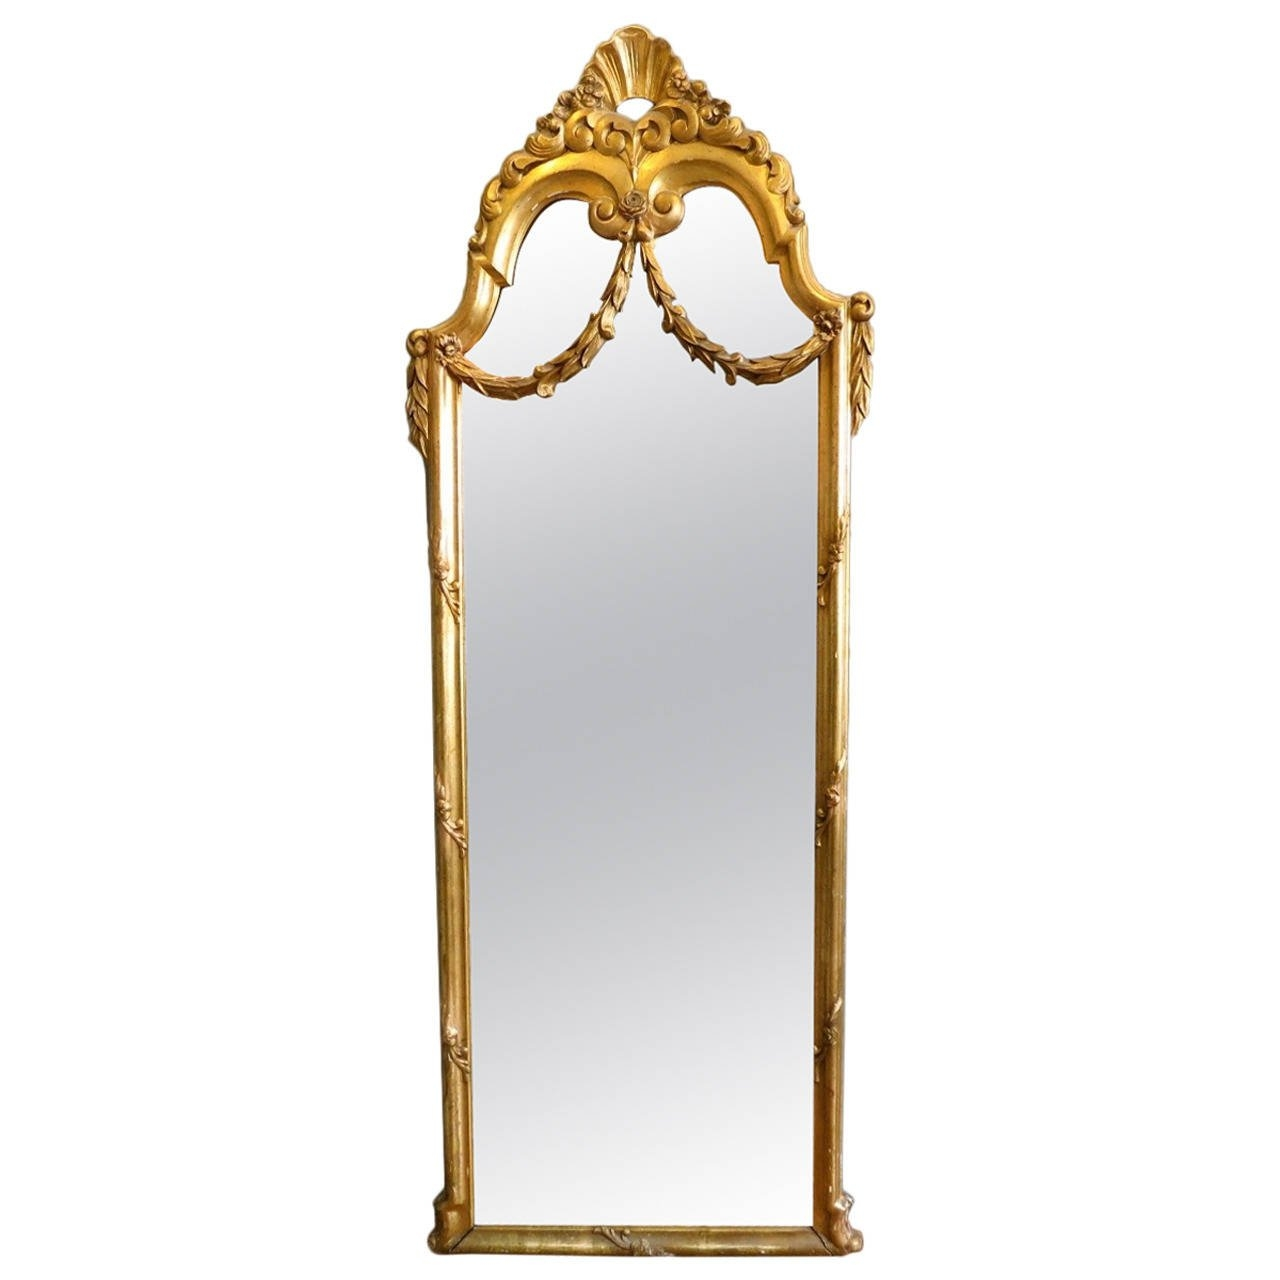 Antique French Gold Gilt Floor Standing Mirror At 1stdibs With Regard To Gold Standing Mirror (View 10 of 15)